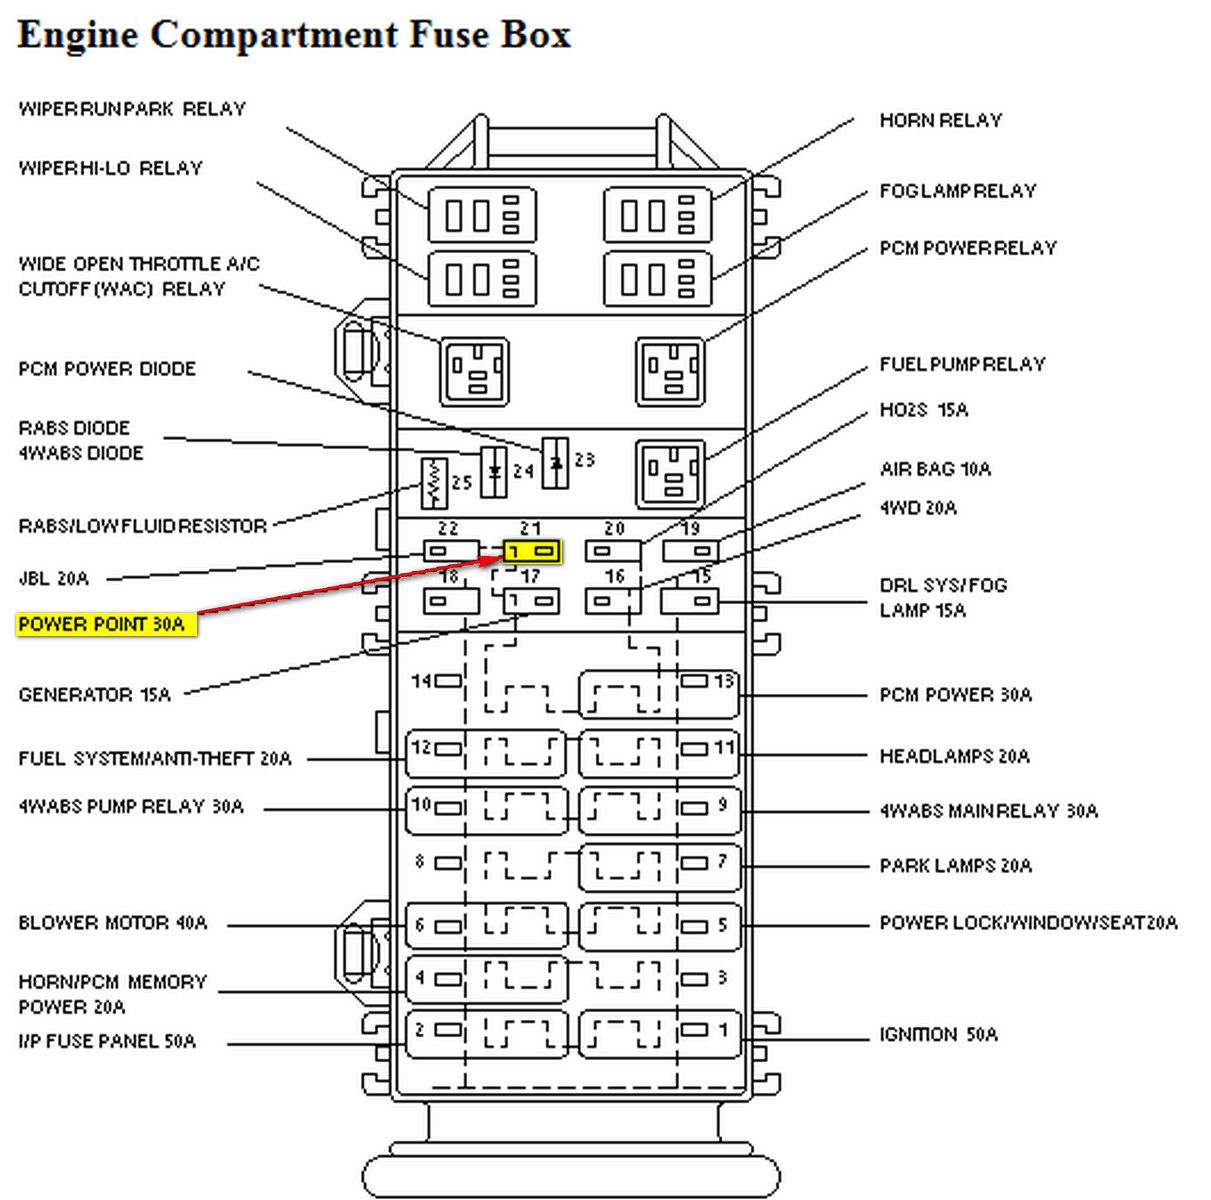 8a55967da7ae1bd251b795845886bd24 2002 ford ranger fuse diagram 1997 ford ranger fuse box diagram 2002 ford explorer relay diagram at n-0.co